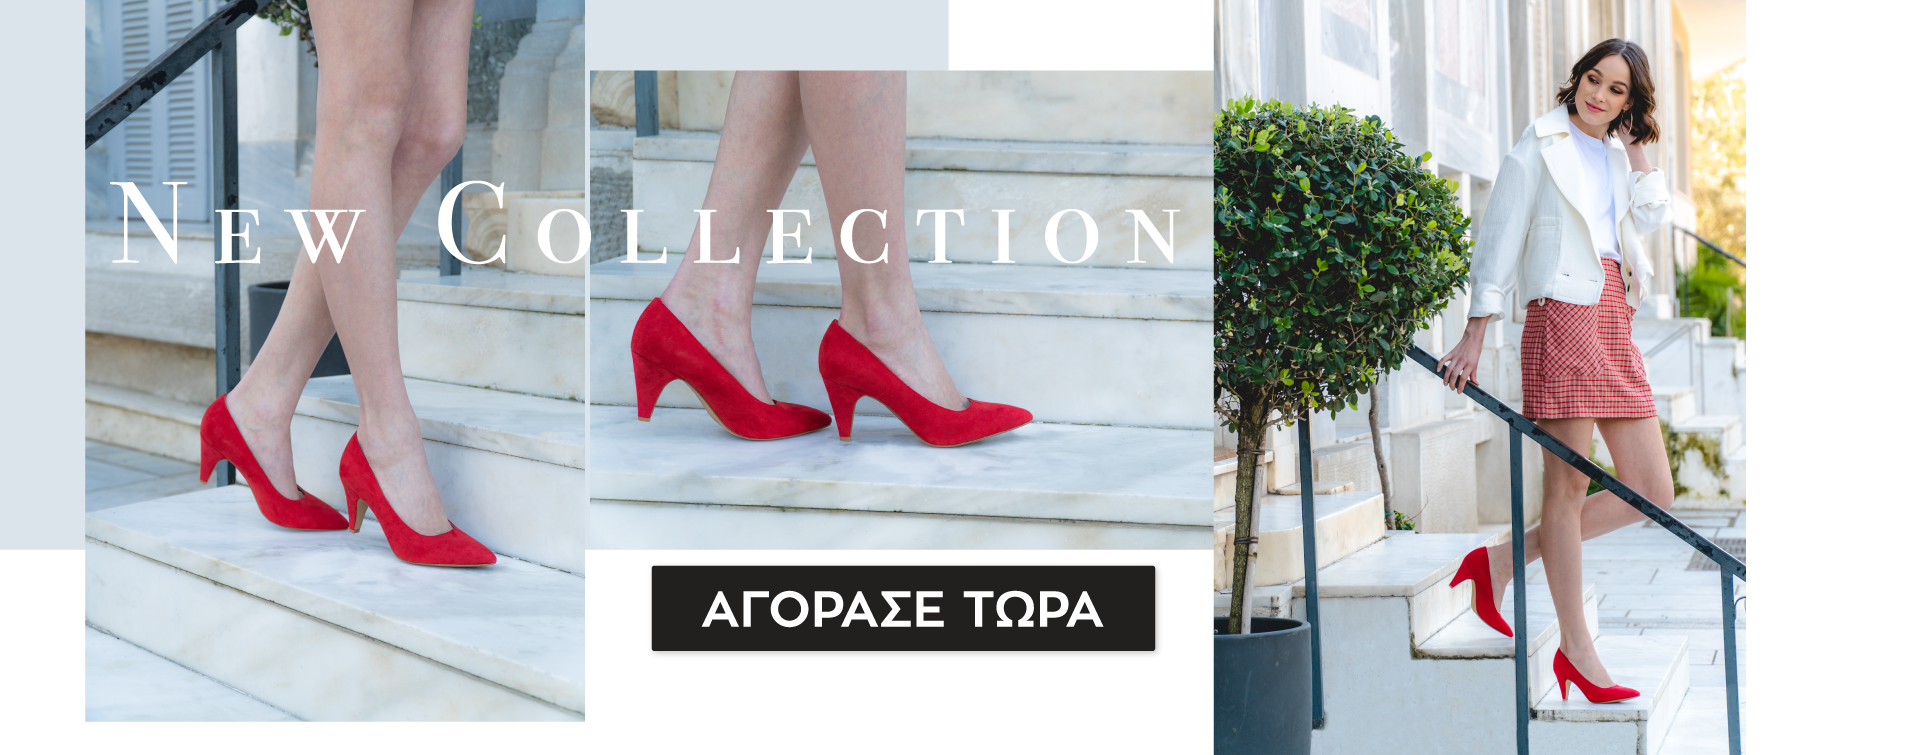 NEW COLLECTION SS19,NEW _COLLECTION_SS19,NEW COLLECTION SS19,NEW COLLECTION SS19,4